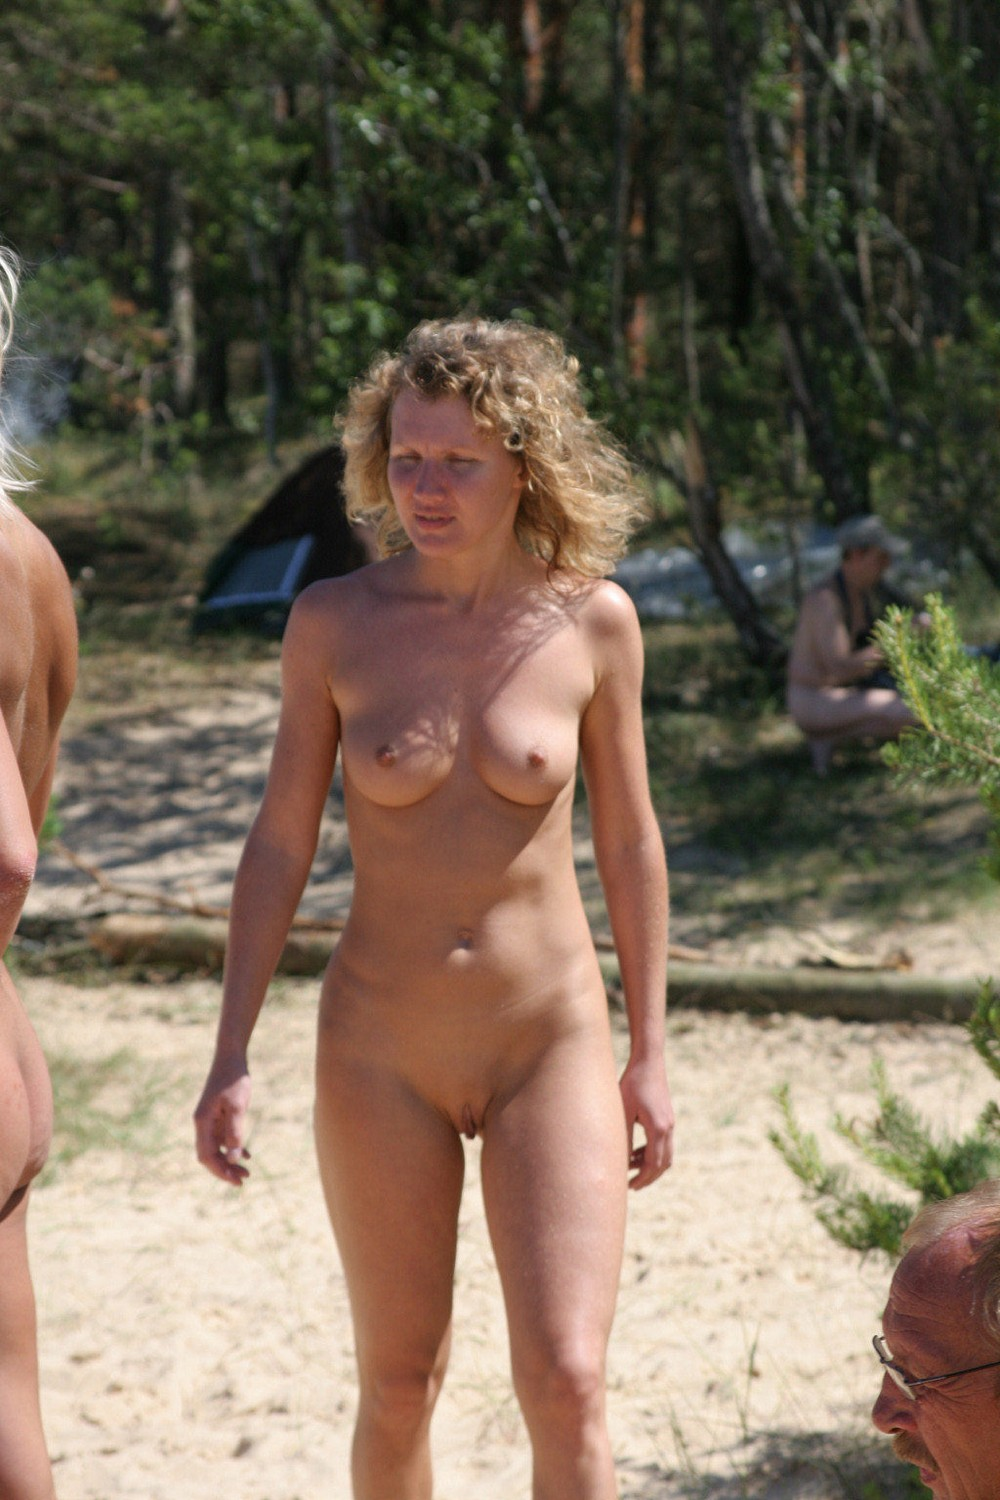 Summerhill nudist camp